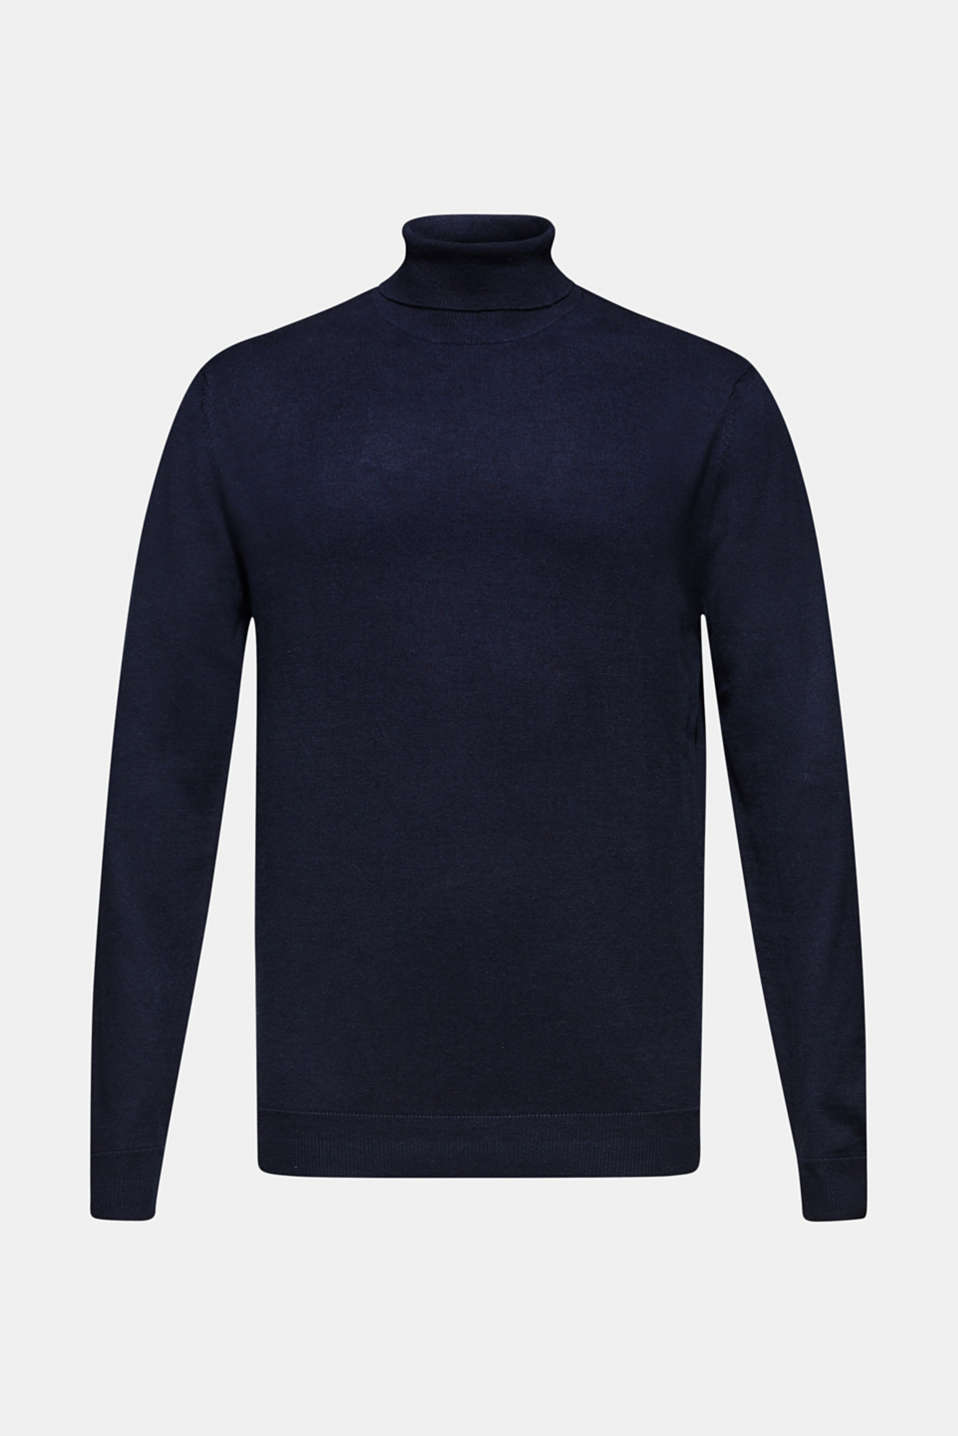 With cashmere: fine knit polo neck jumper, NAVY, detail image number 7